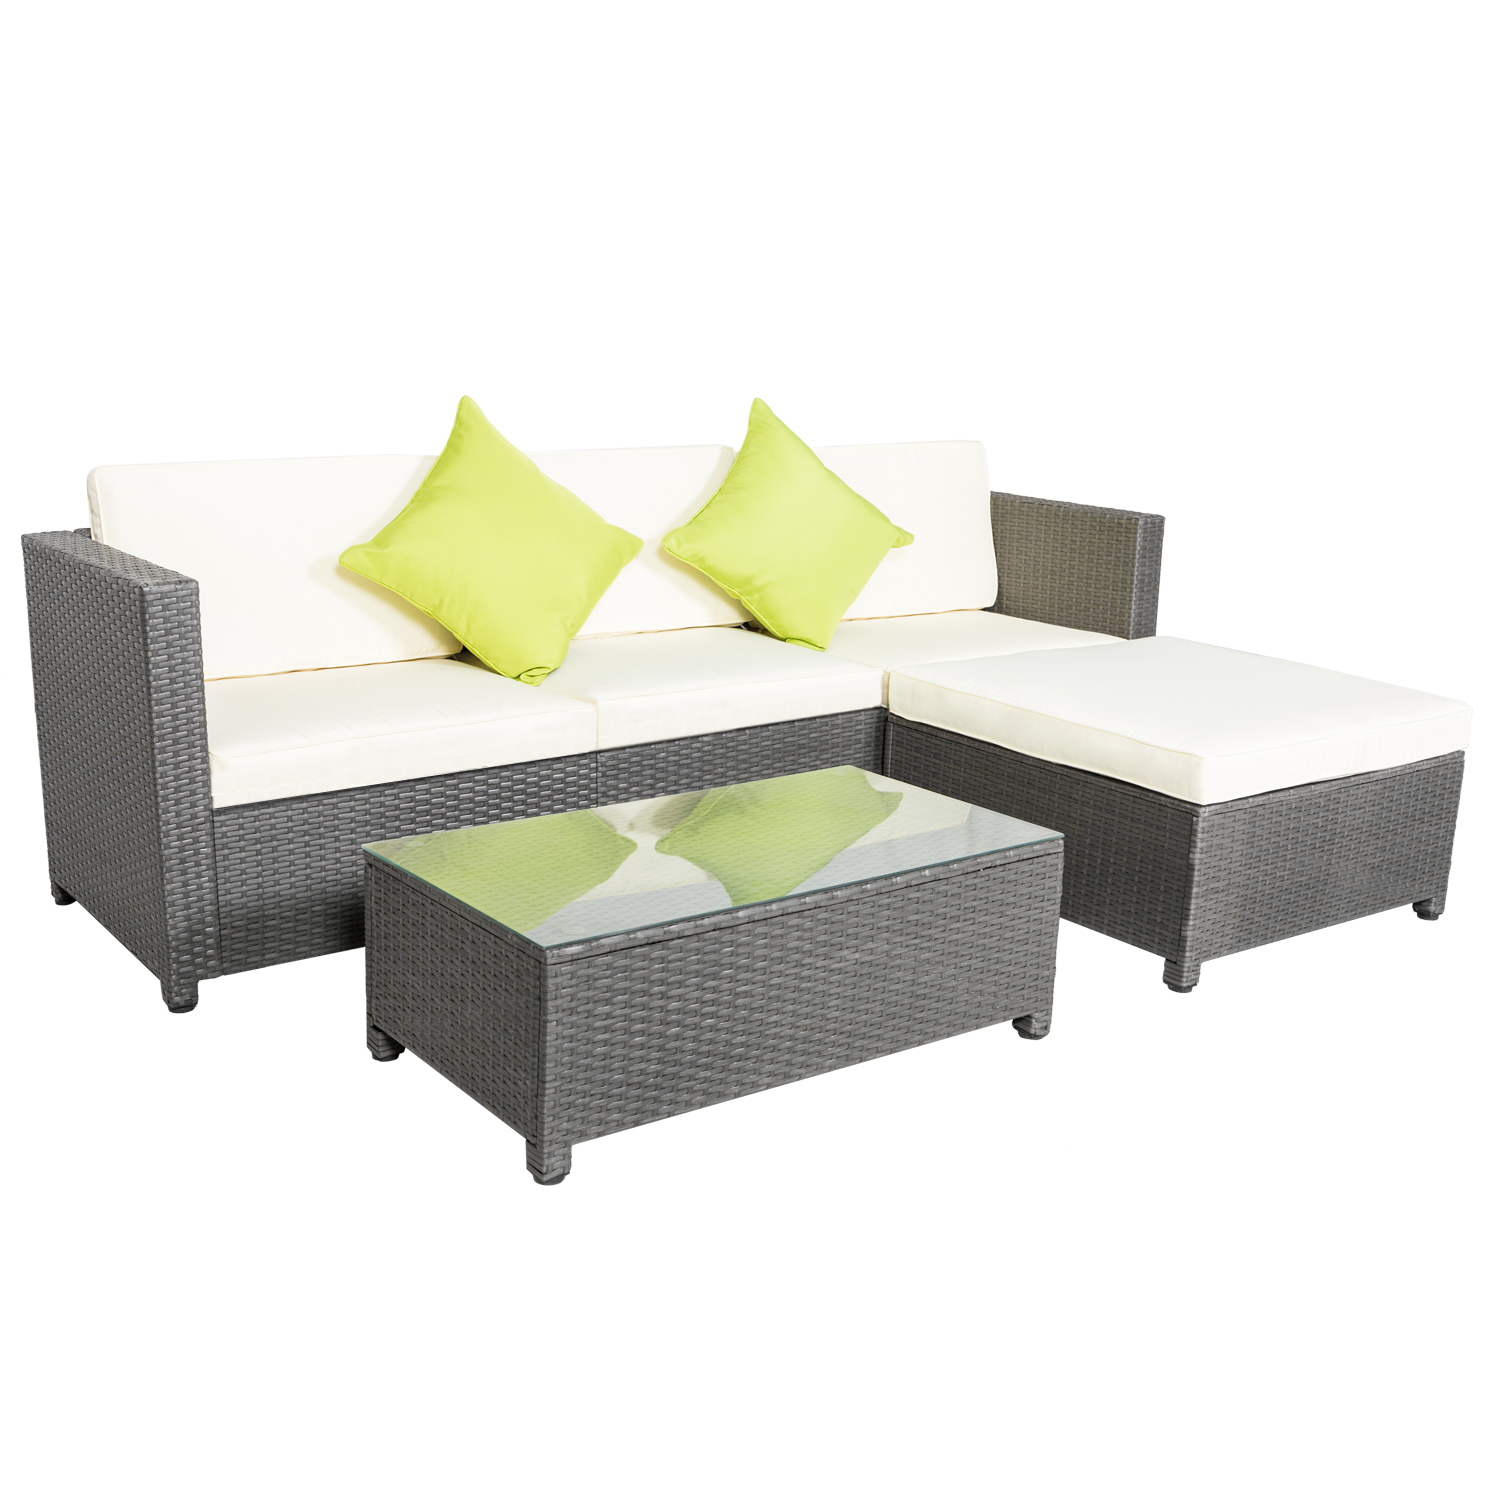 Rattan Sofa Details About 5pcs Outdoor Rattan Wicker Patio Set Garden Lawn Sofa Chair Furniture Cushioned